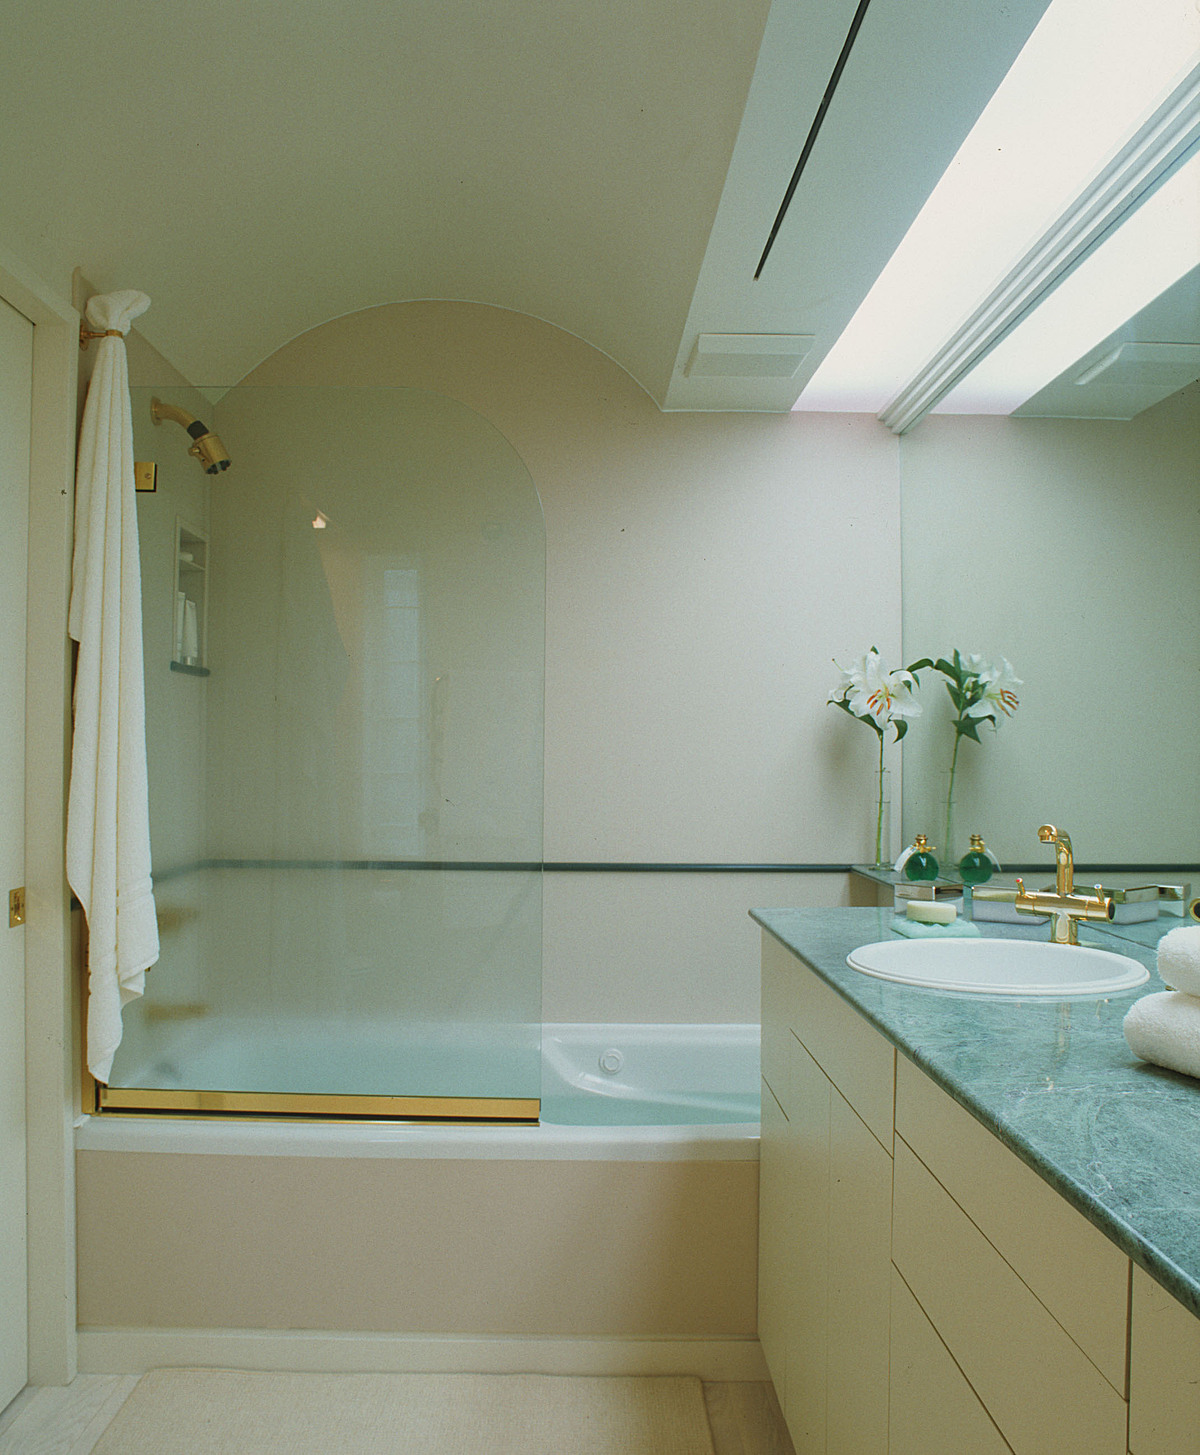 Tub and shower with glass screen.